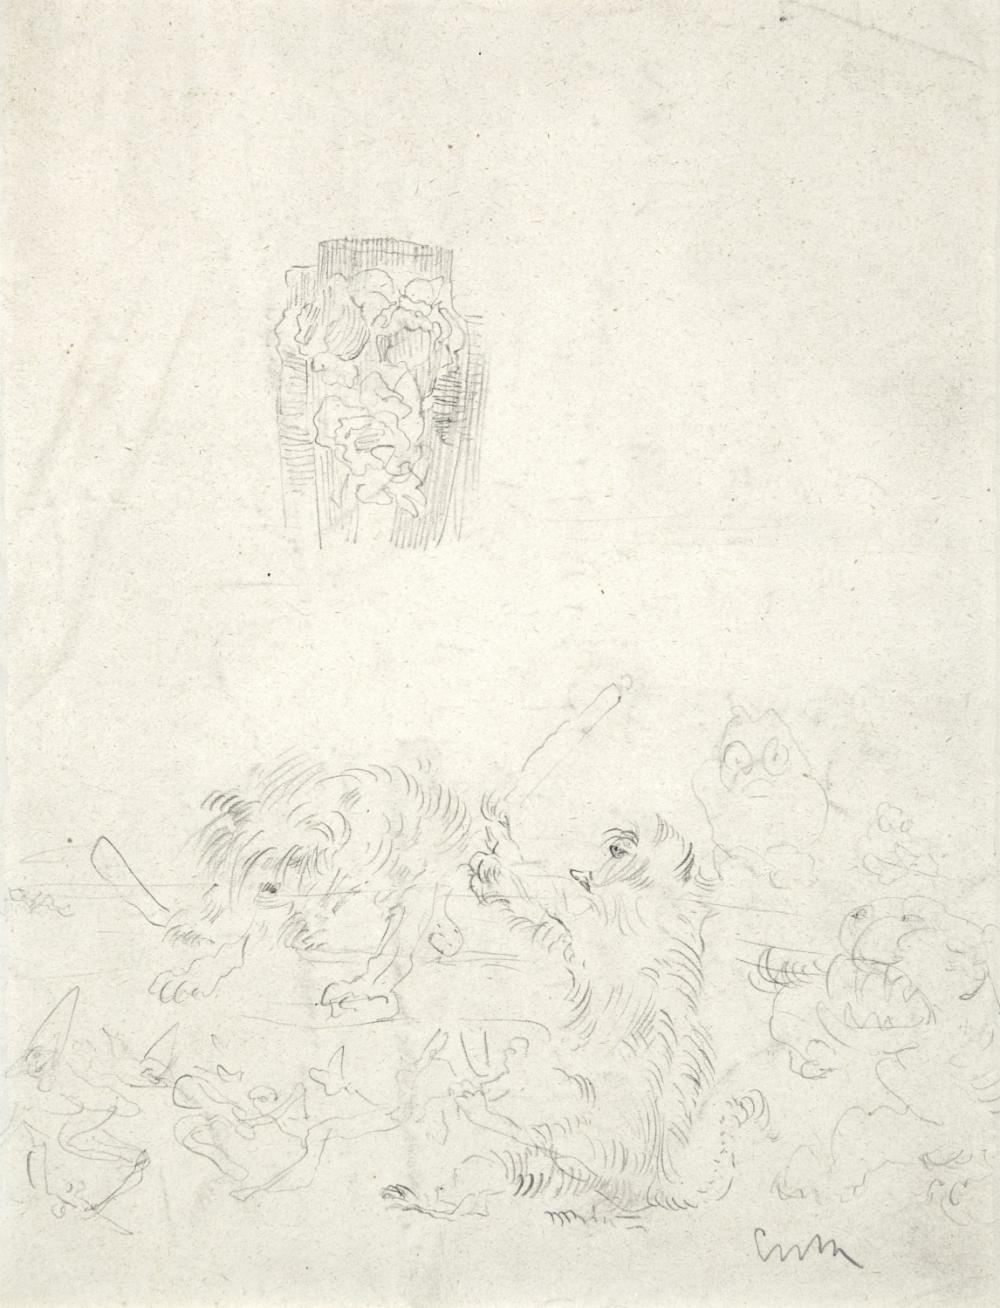 Ensor James - Study sheet with vase and fighting animals